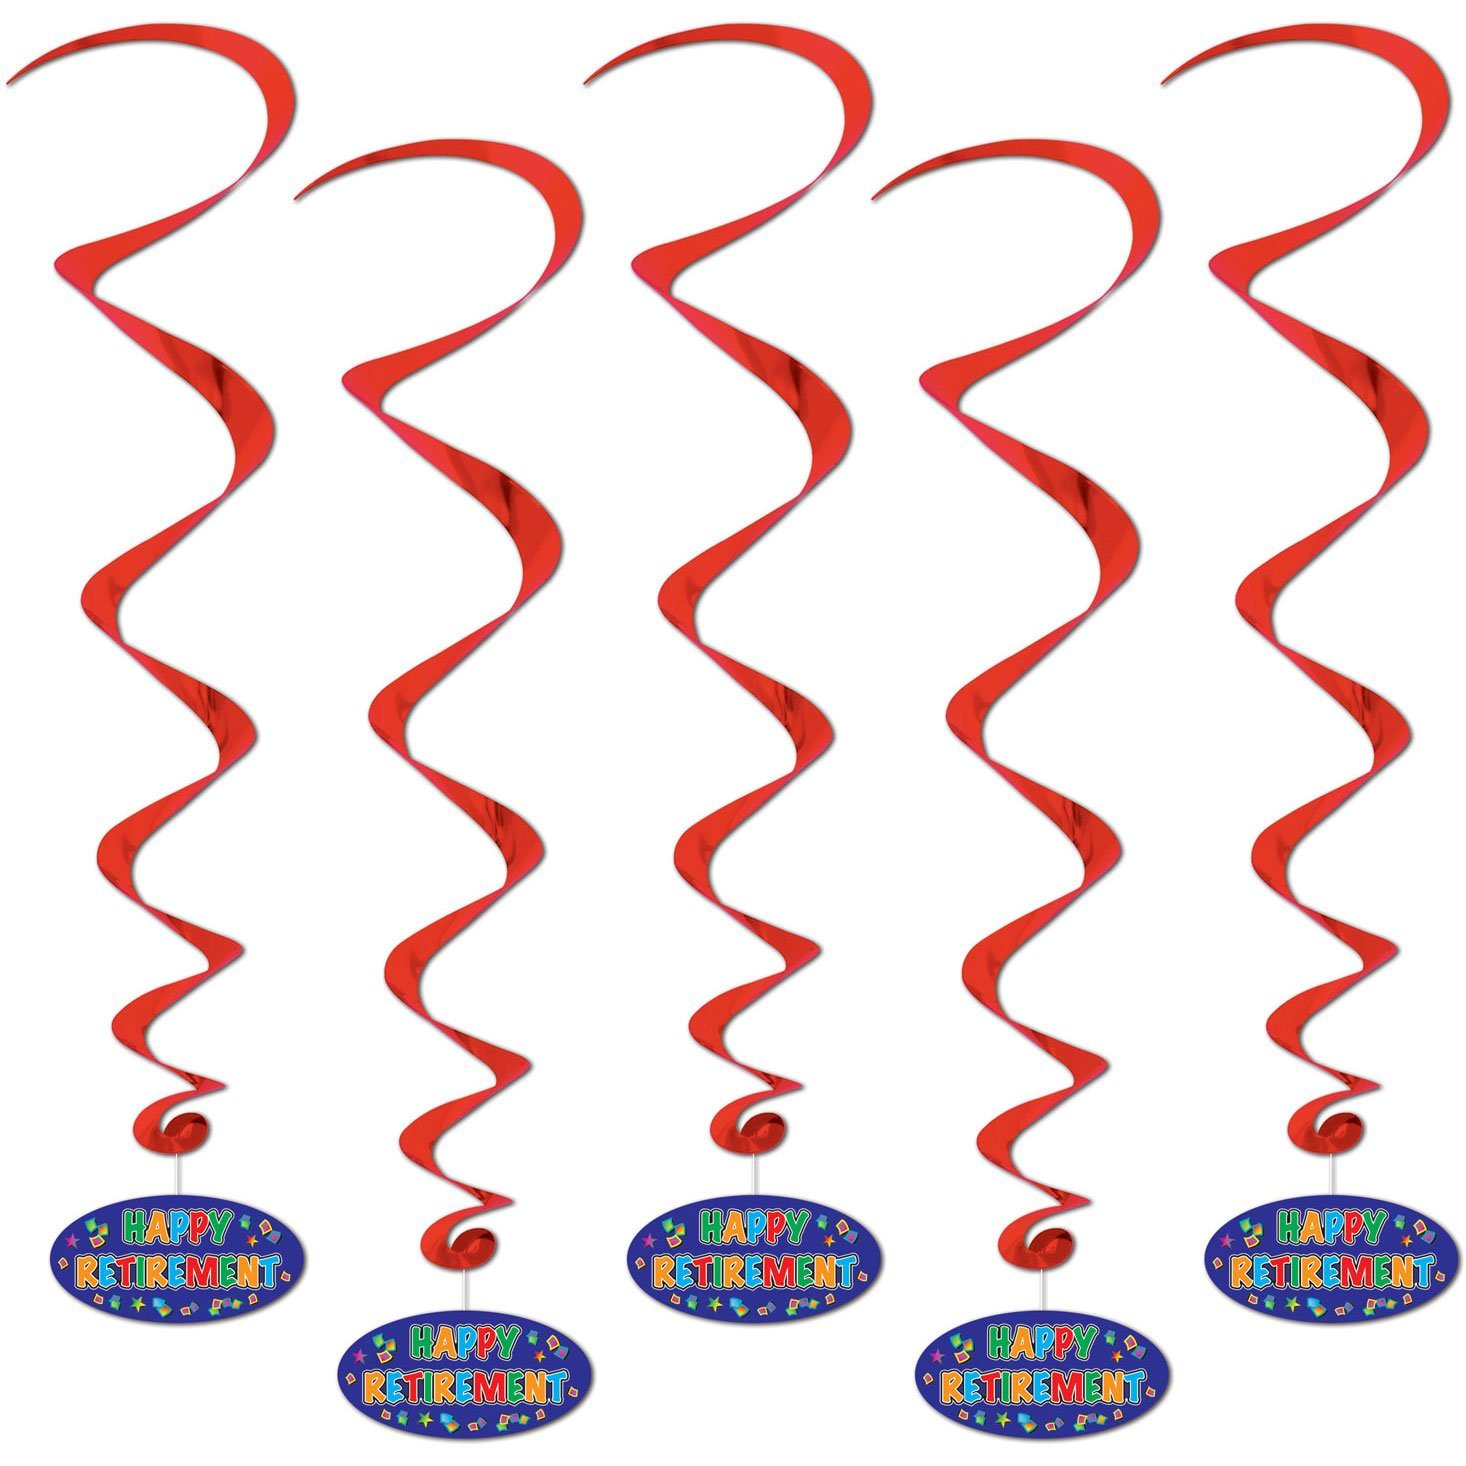 Happy Retirement Whirls (Pack of 6)